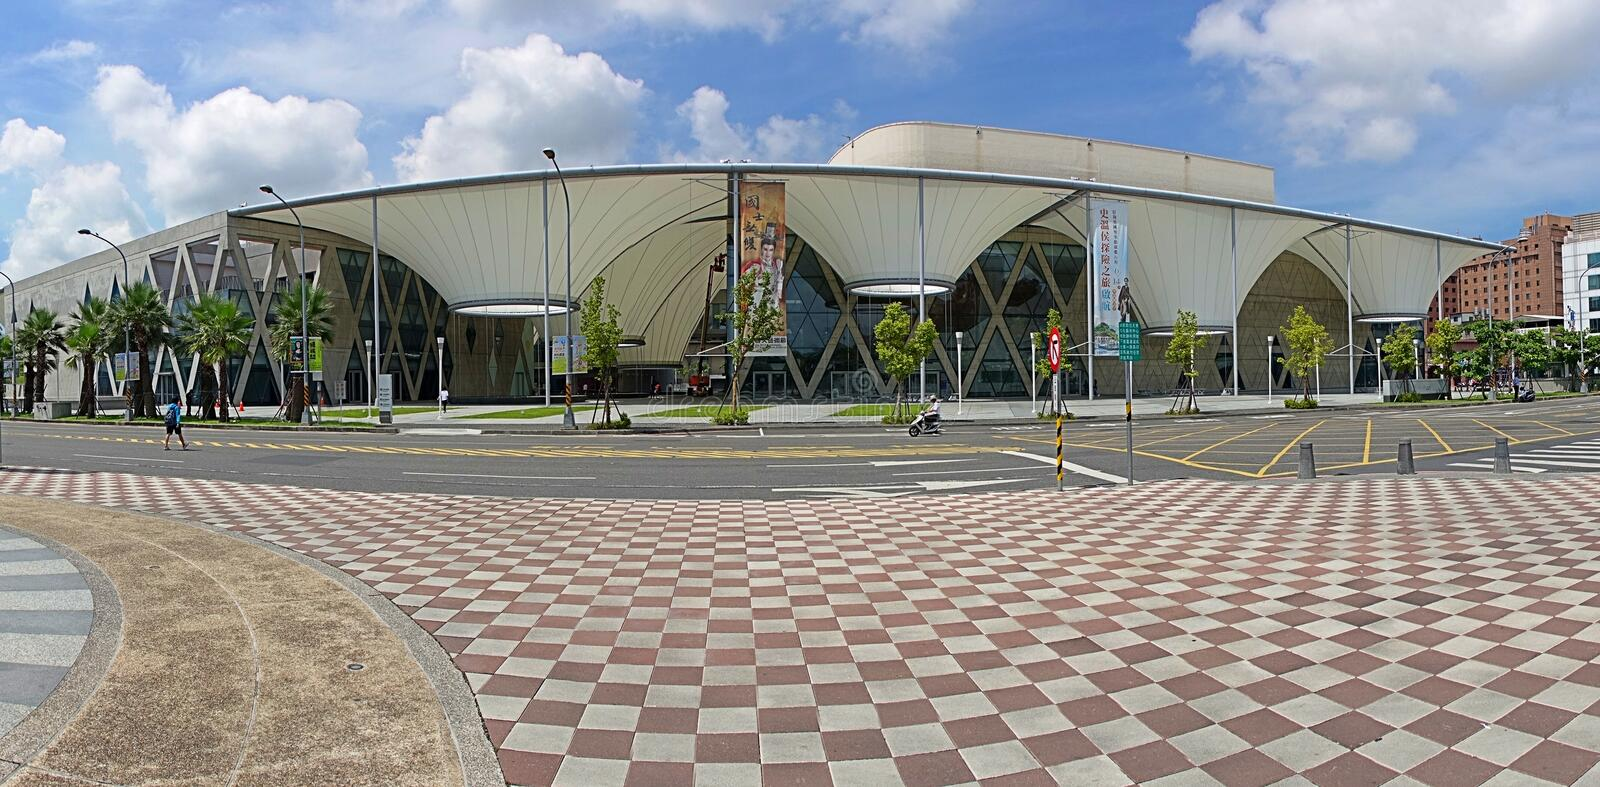 Panoramic View of the Da Art Center in Kaohsiung. KAOHSIUNG, TAIWAN -- JULY 1, 2014: The Da Art Center is a multi-functional art space for performances and royalty free stock images